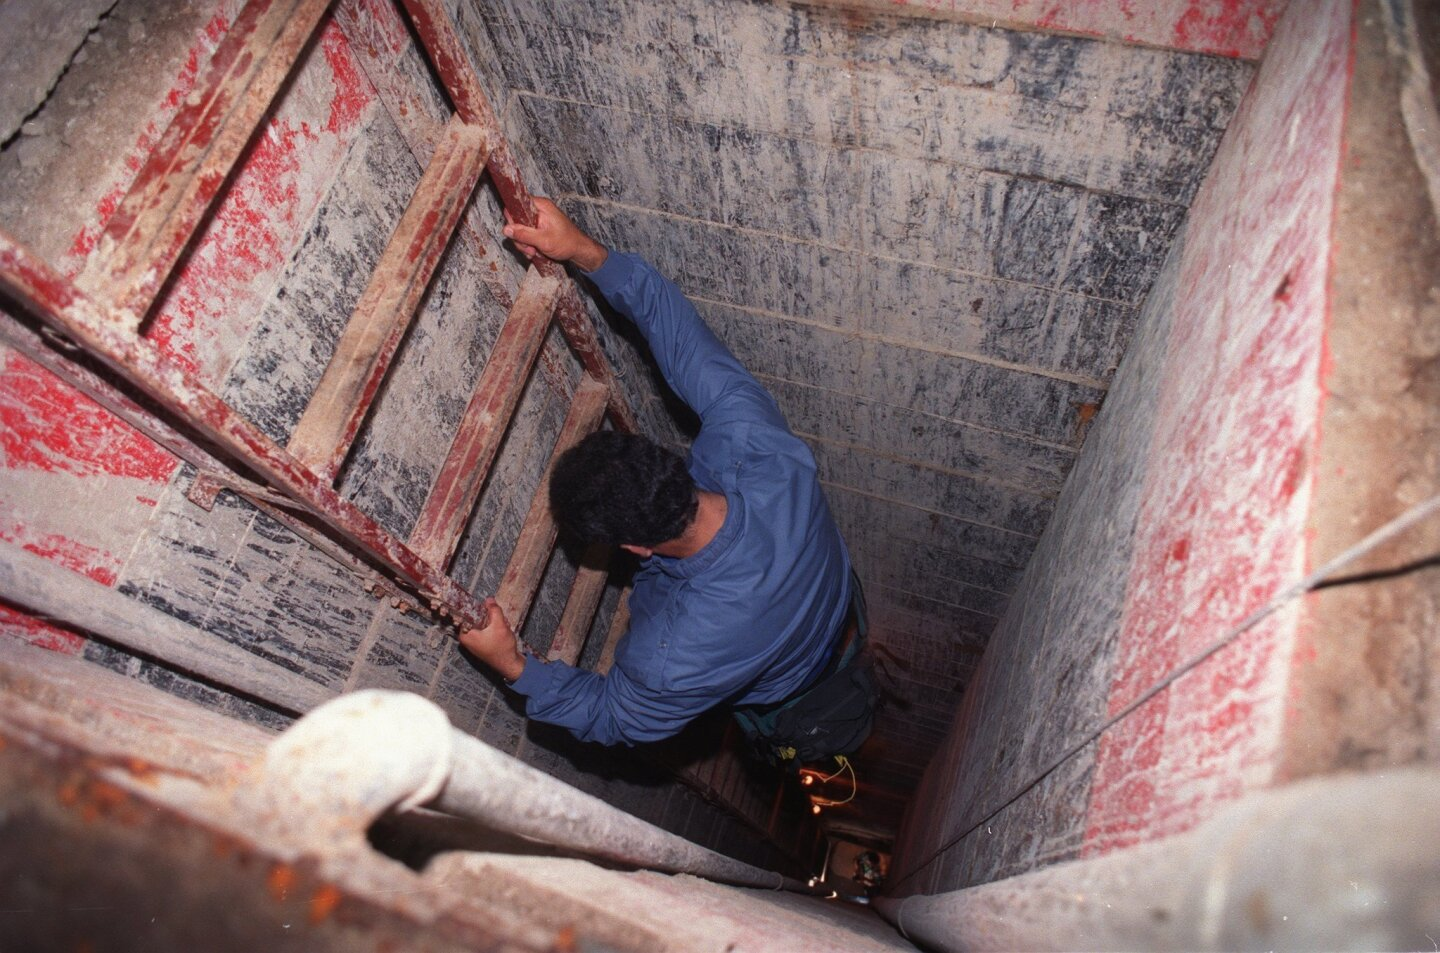 In May 1993 Mexican federal authorities discovered the frist sophisticated tunnel being built to smuggle drugs into the U.S. at San Diego. The tunnel stretched 1,452 feet after plunging 65 feet underground. It was estimated to cost as much as $2 million to build, and included electrical power and air conditioning. The tunnel stopped 120 feet short of an Otay Mesa warehouse at on Siempre Viva Road. It was believed to have been built by a group headed by suspected drug trafficker Joaquin Guzman Loera. (John McCutchen/U-T)